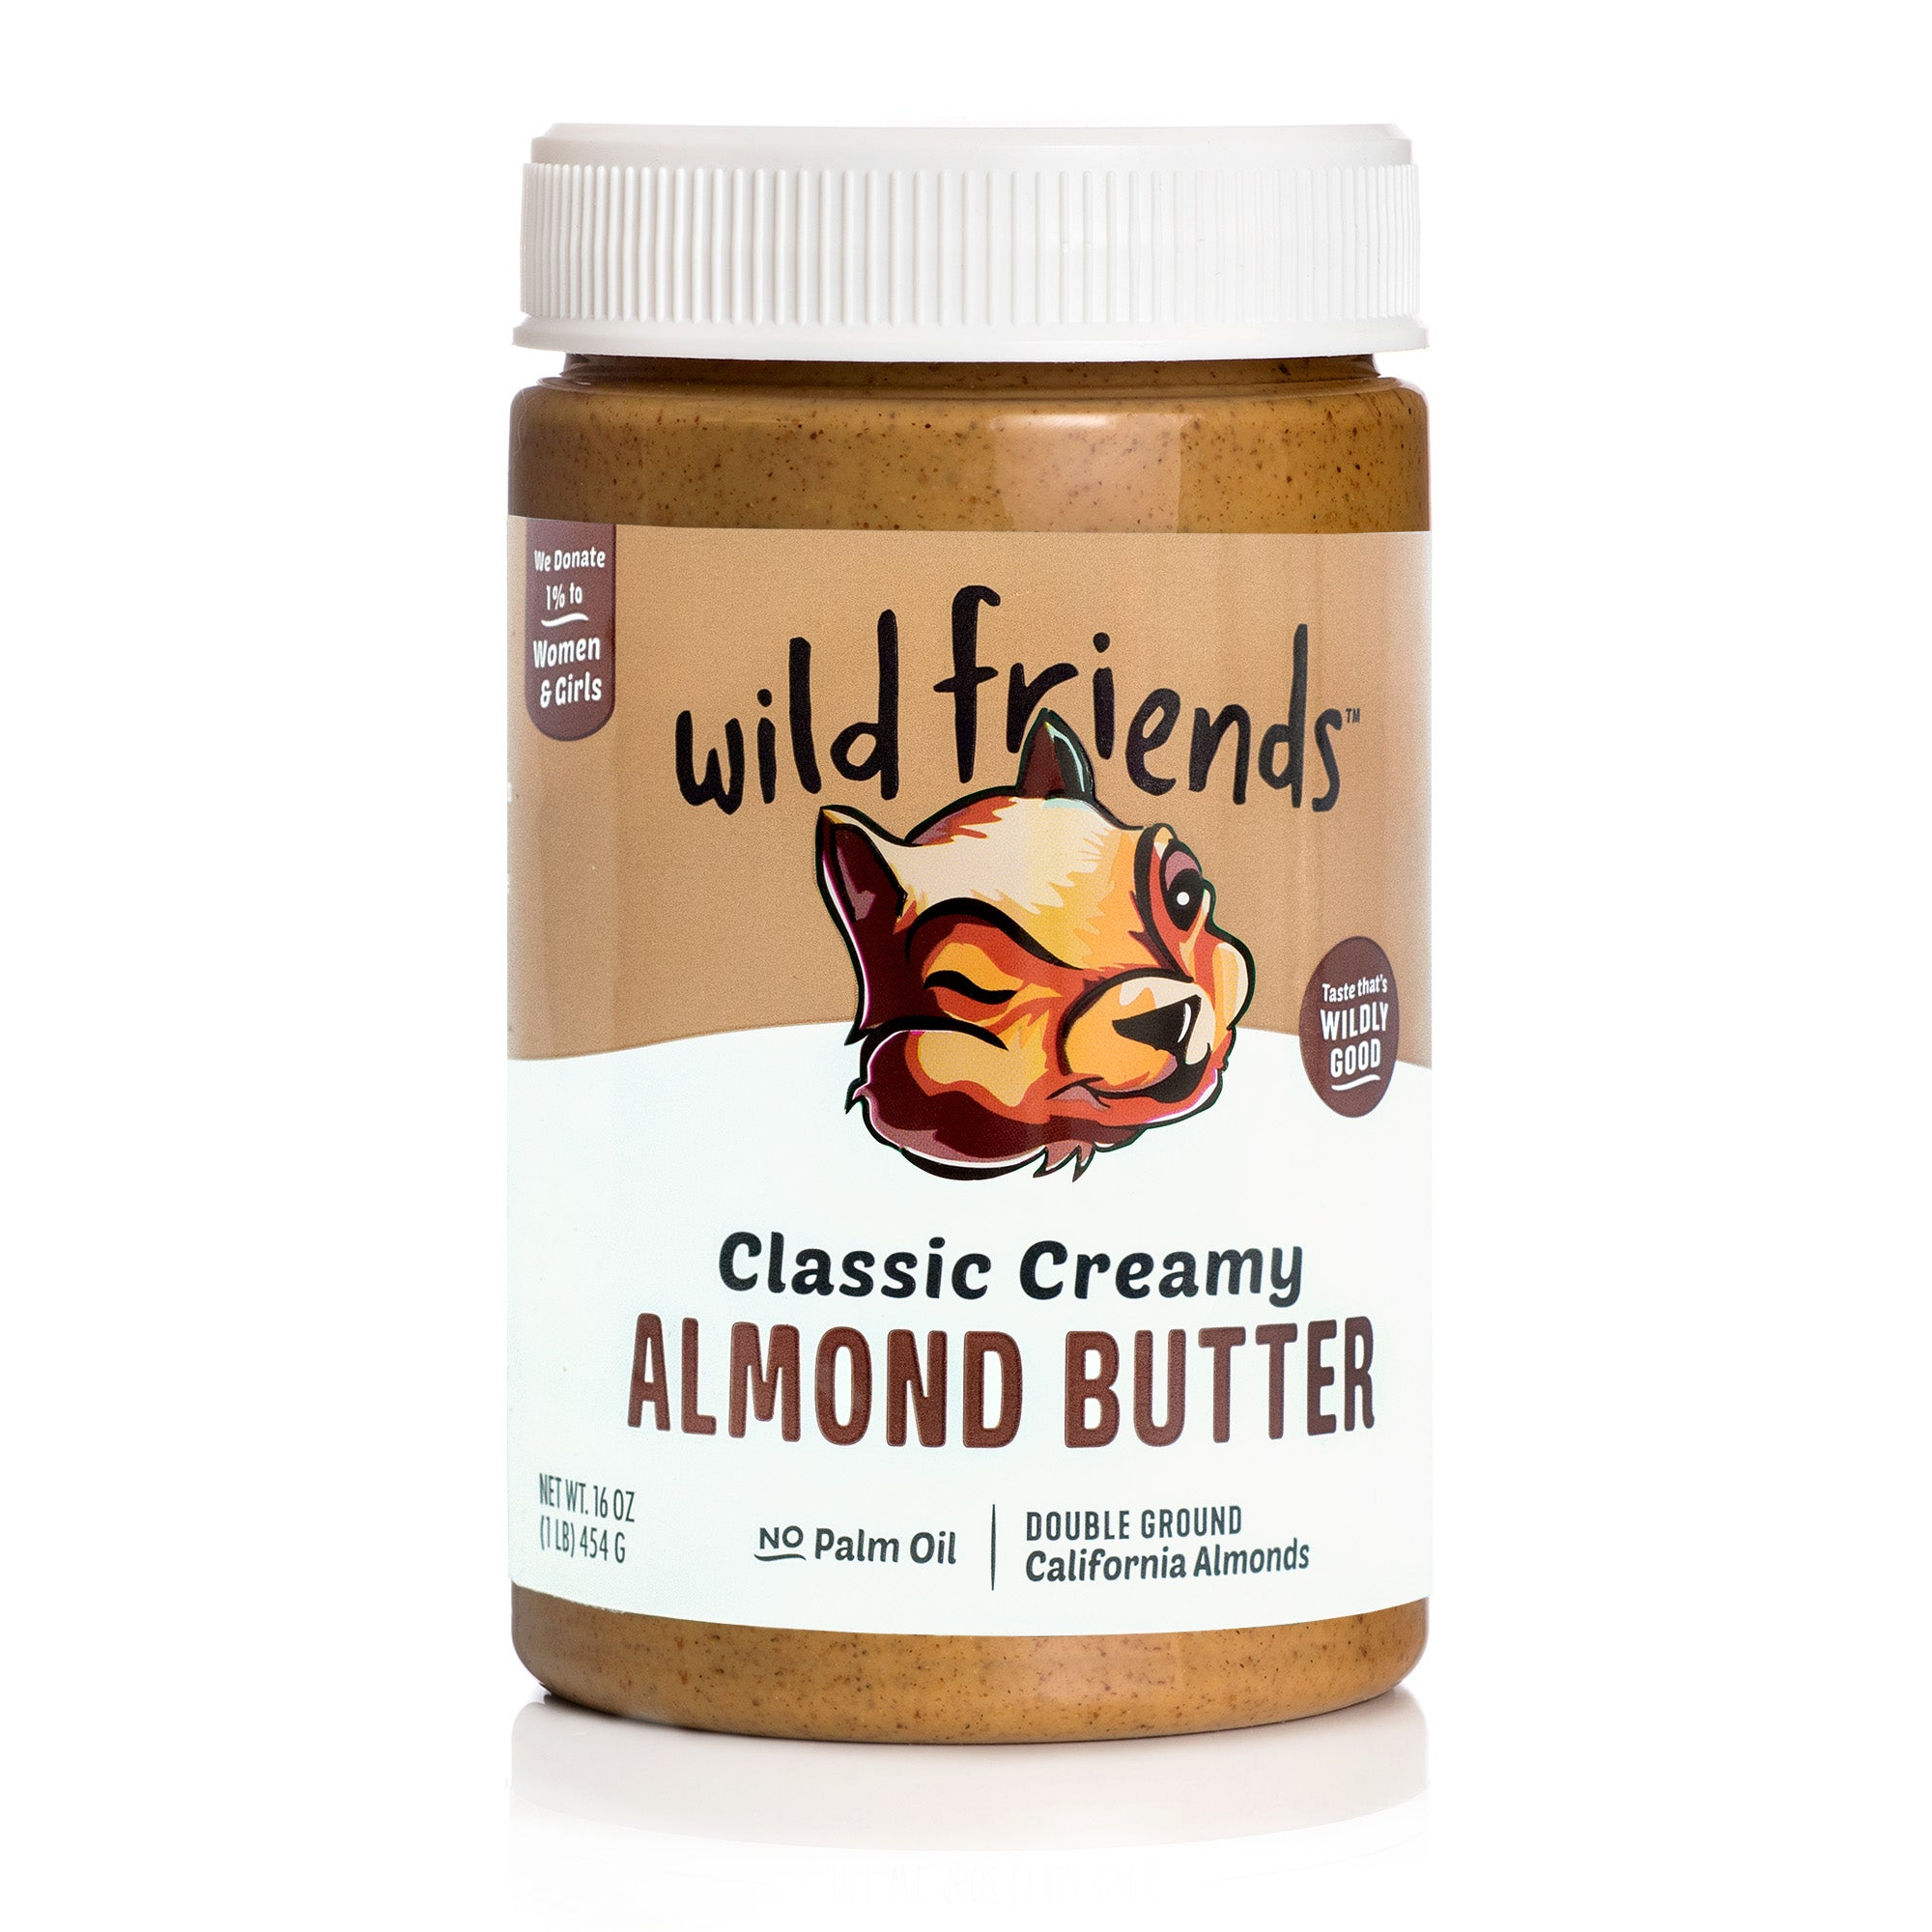 Classic Creamy Almond Butter Packets